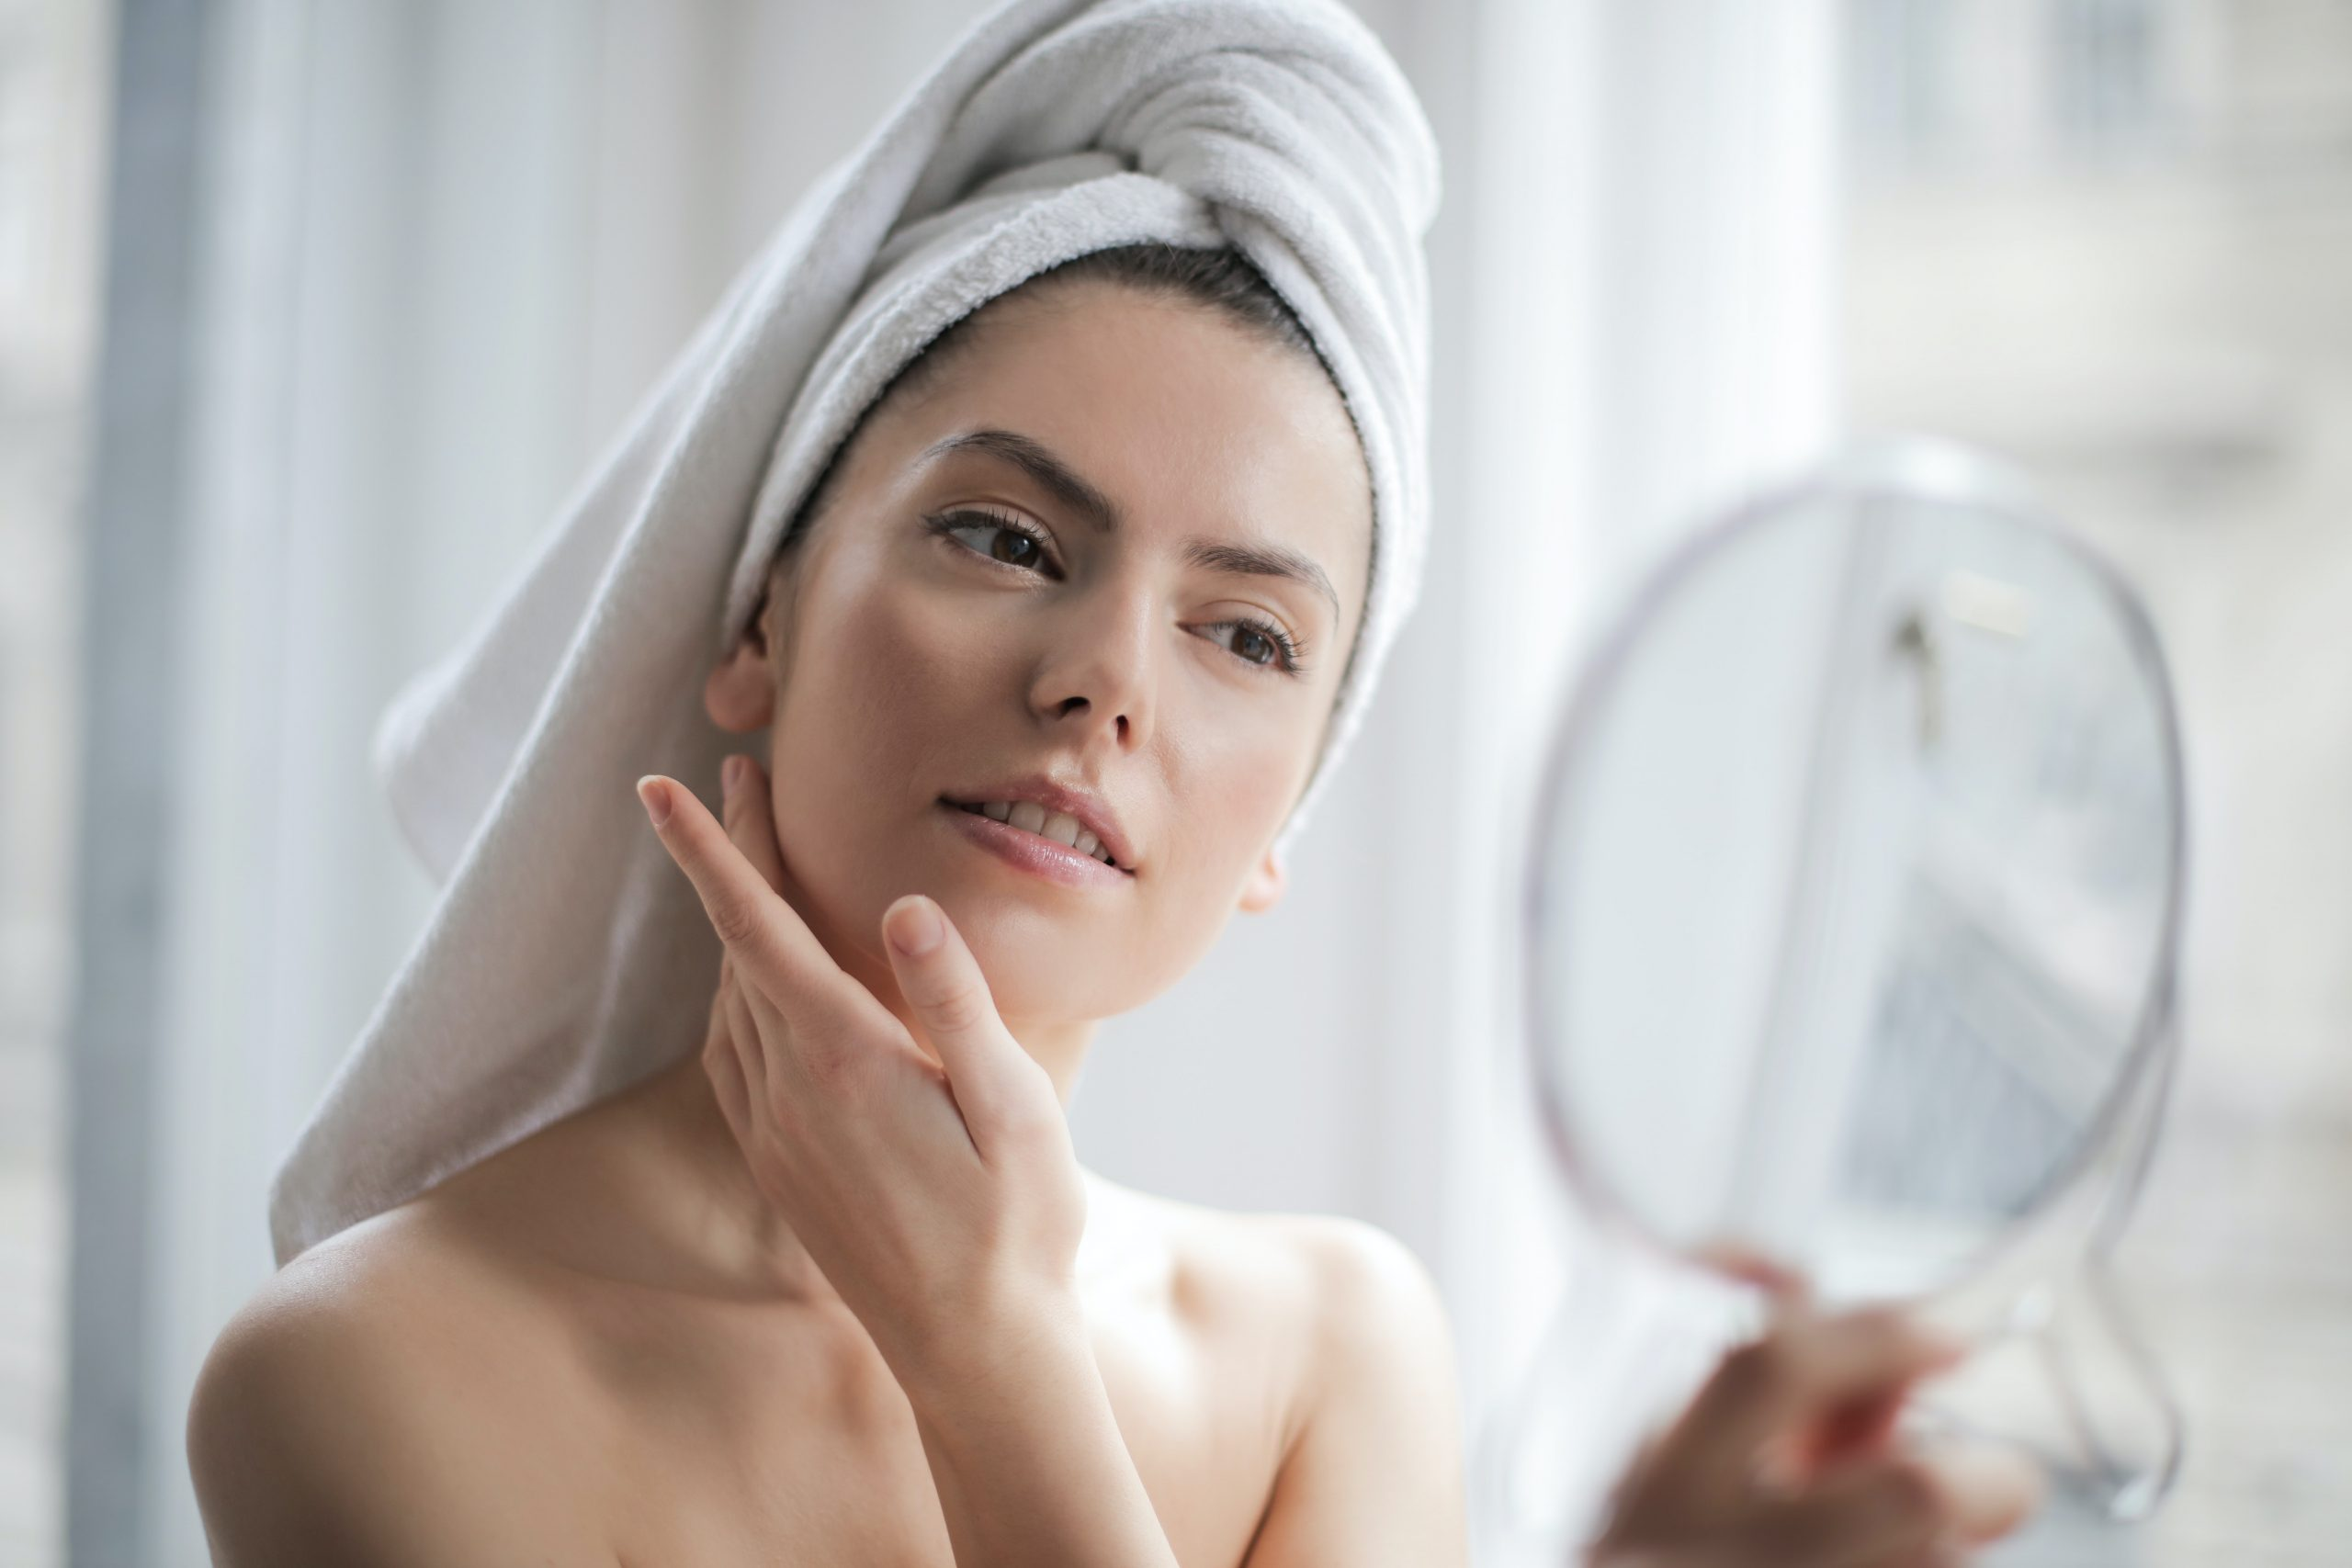 Give Your Skin a Pick-Me-Up with Dermatologist-Approved Dermaplaning